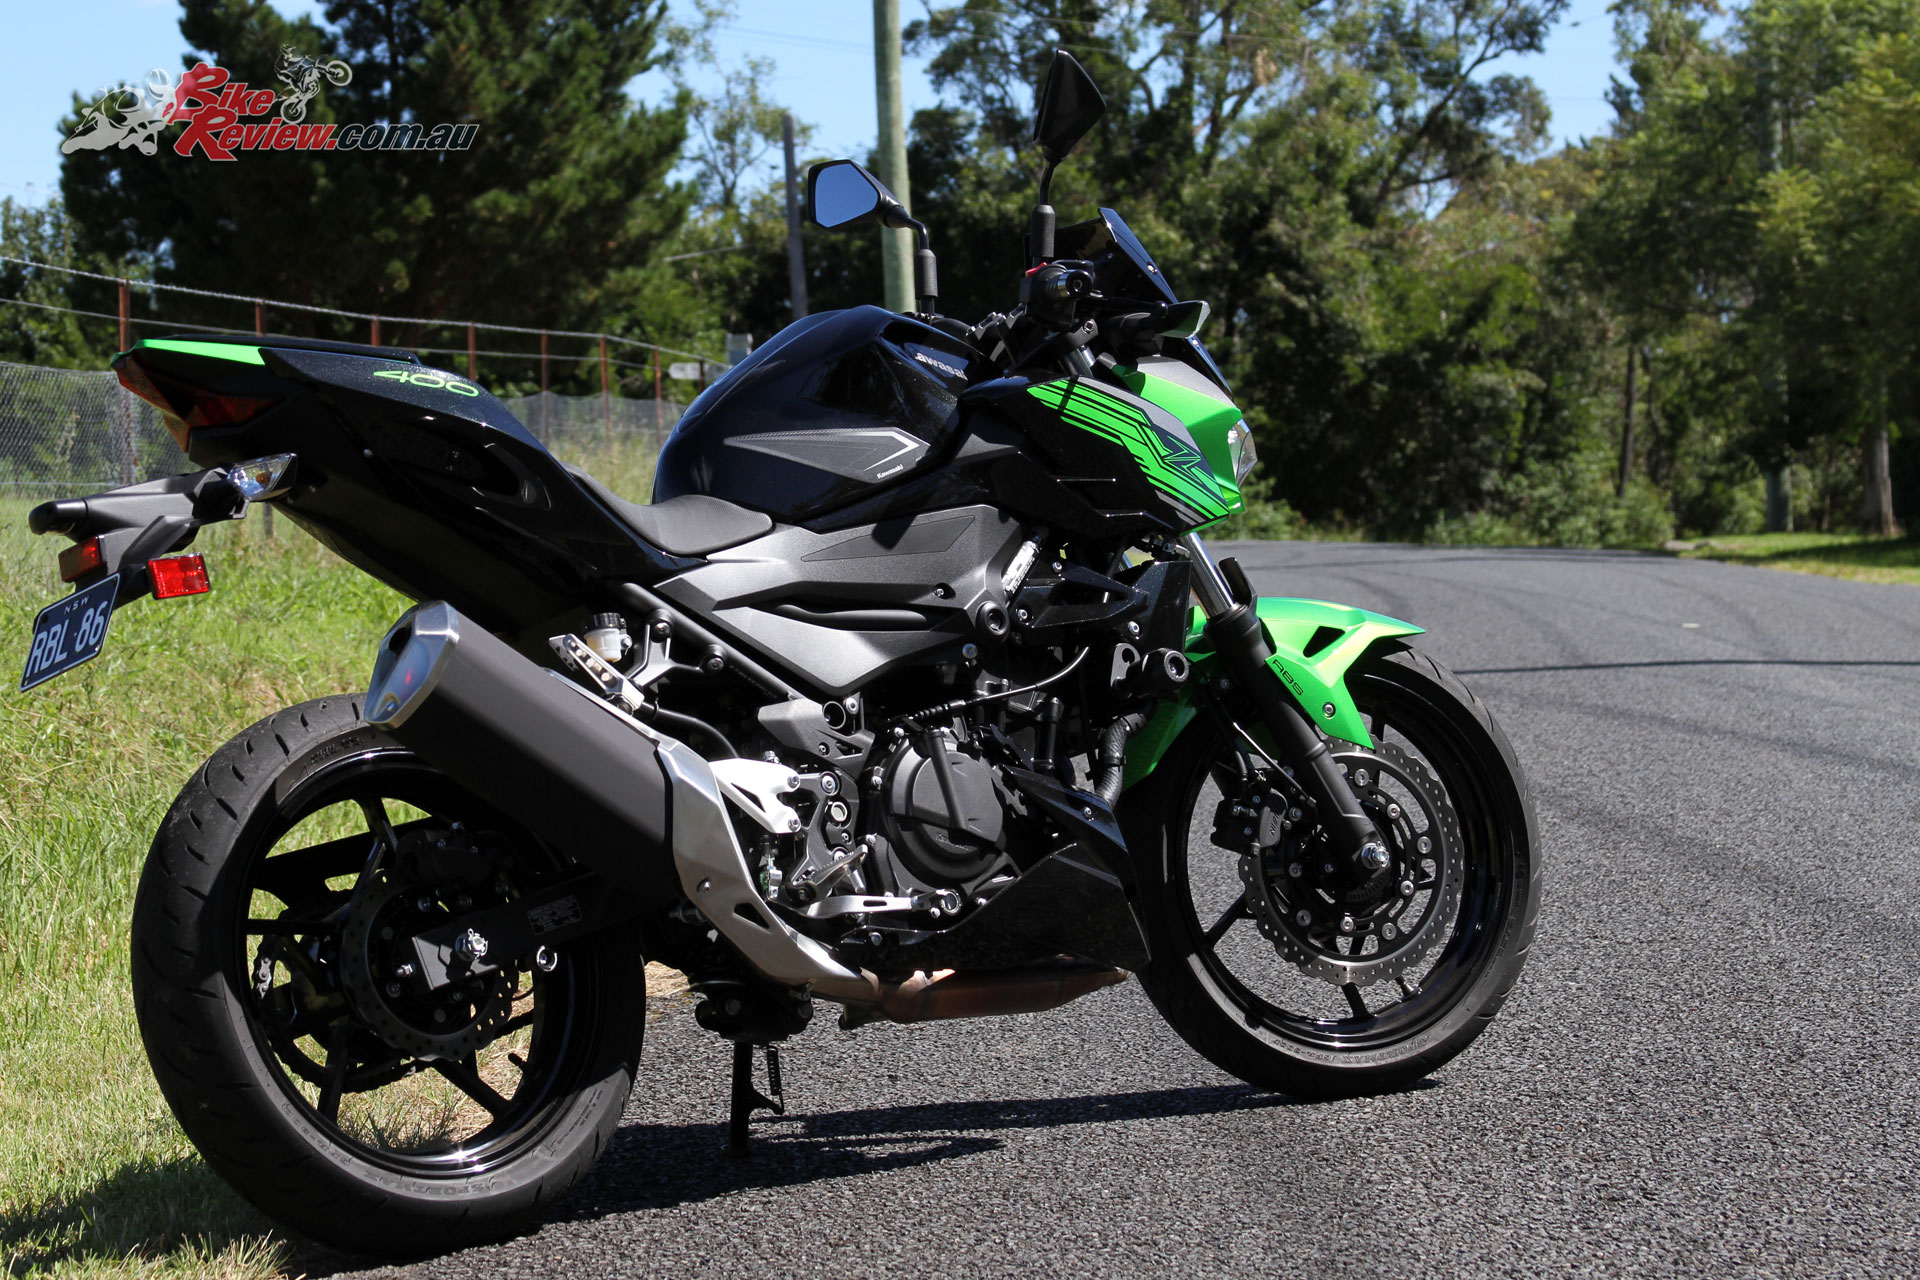 Front brake performance on the Z400 is also a real standout with exceptional power